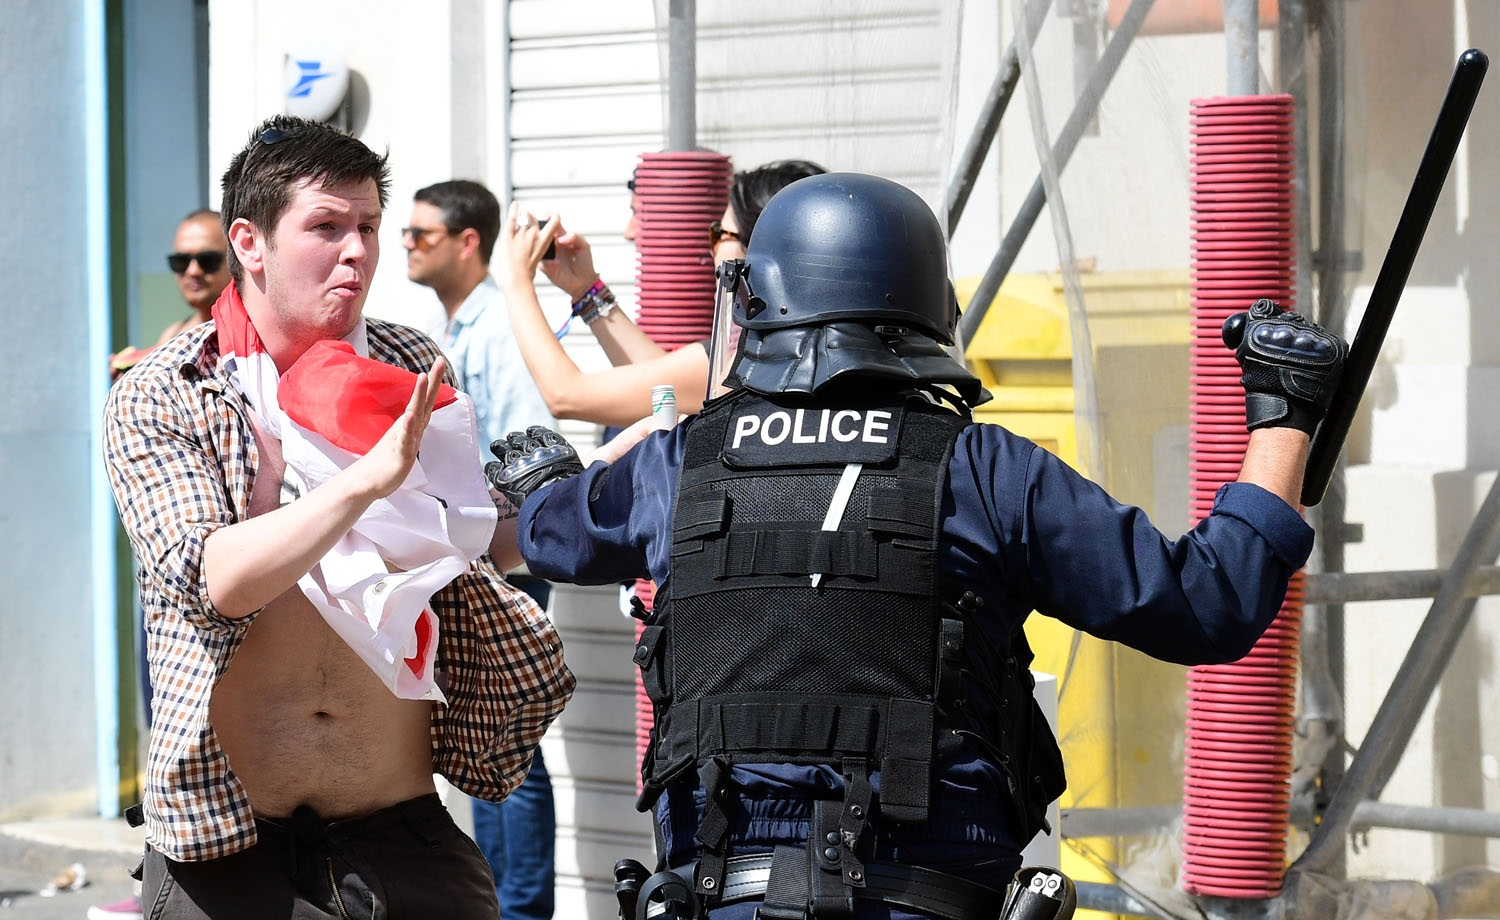 An England fan (L) clashes with police personnel in the city of Marseille, southern France, on June 11, 2016